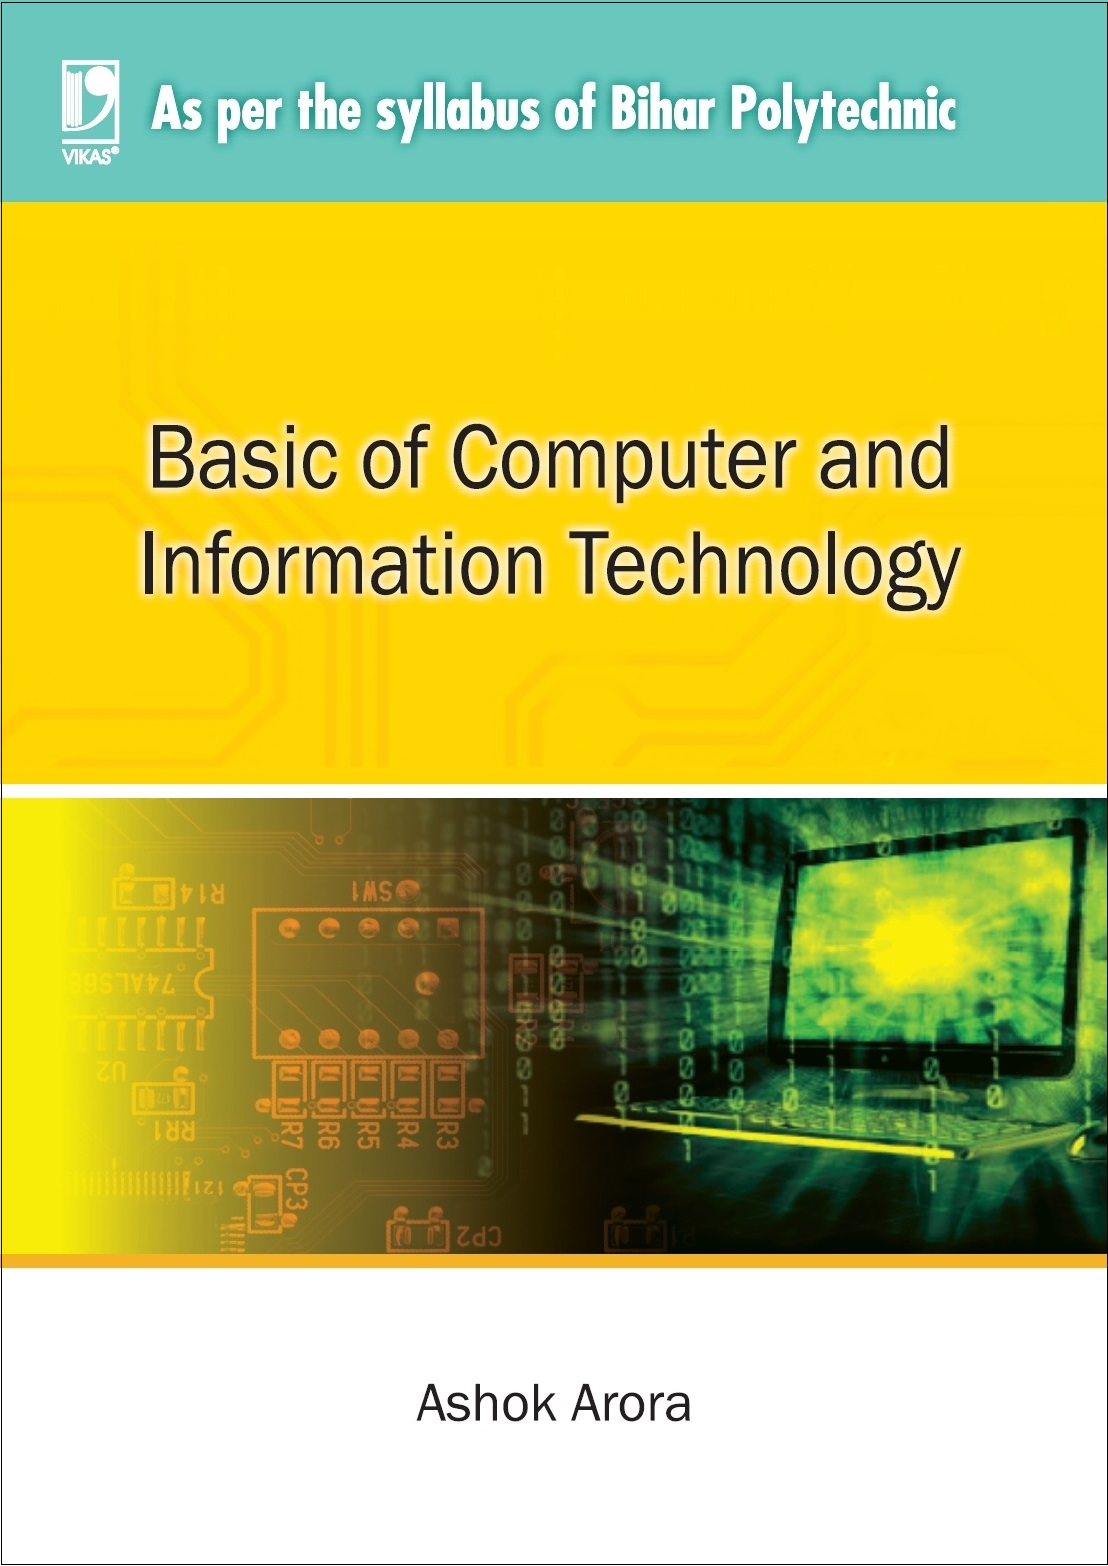 BASIC OF COMPUTER AND INFORMATION TECHNOLOGY: (FOR BIHAR POLYTECHNIC)